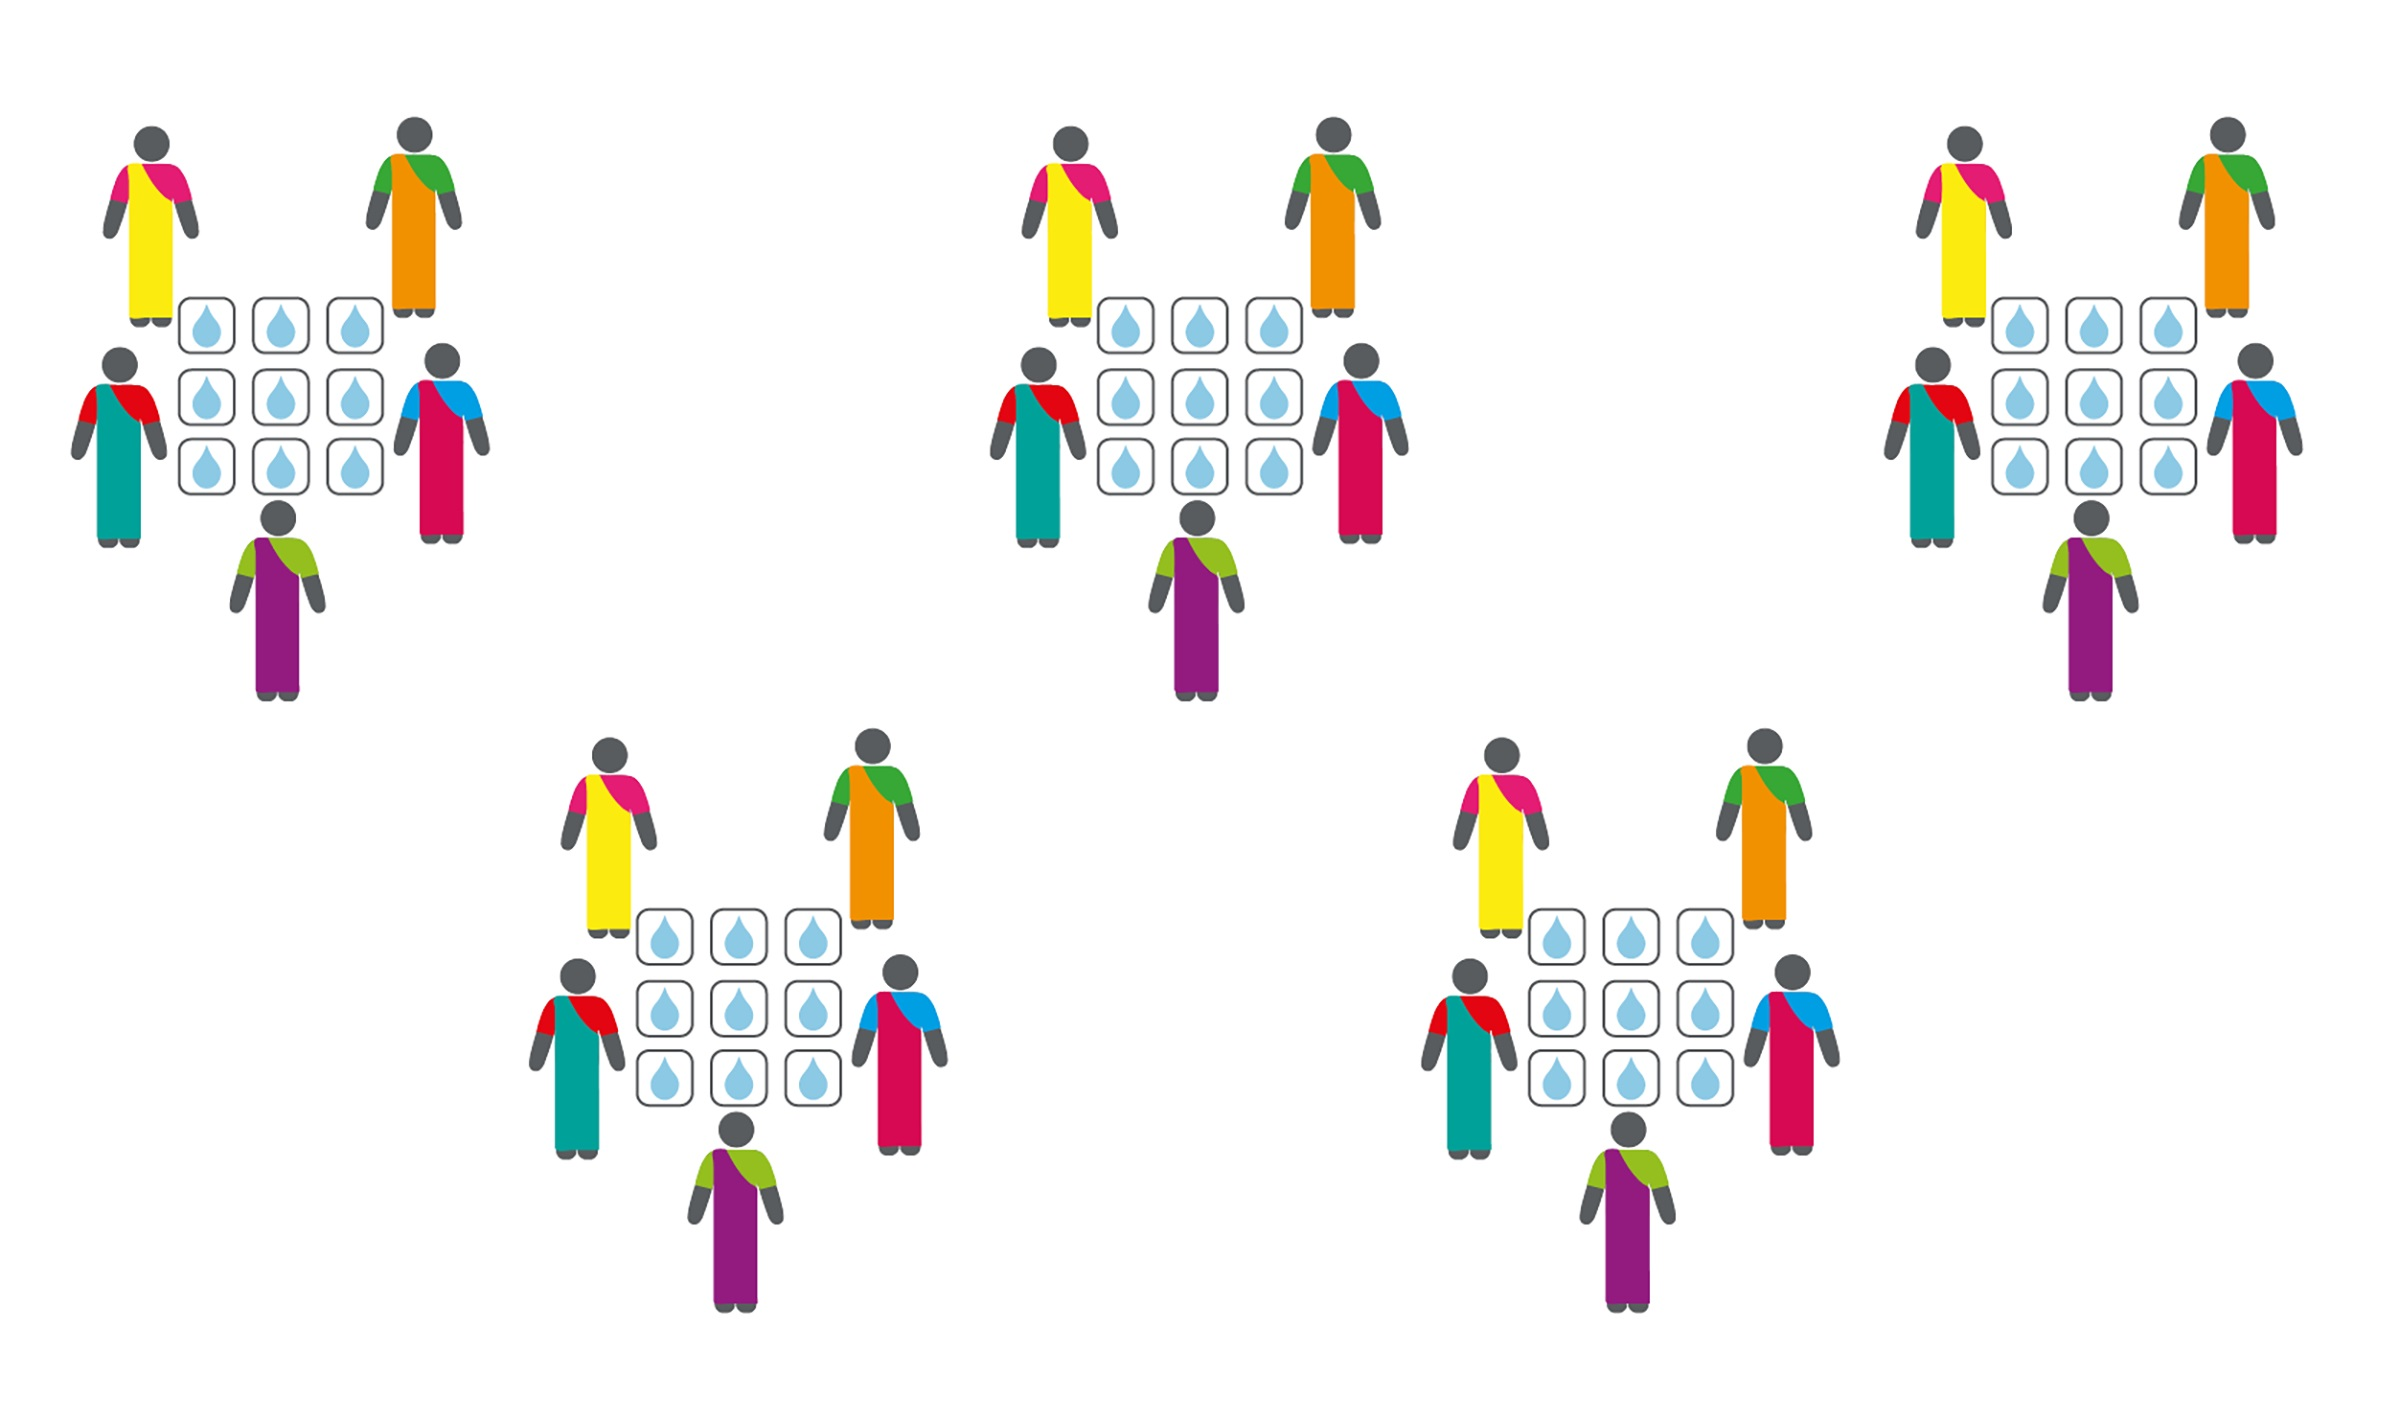 Illustration showing 3 groups of 5 women standing around a grid of clean water droplets